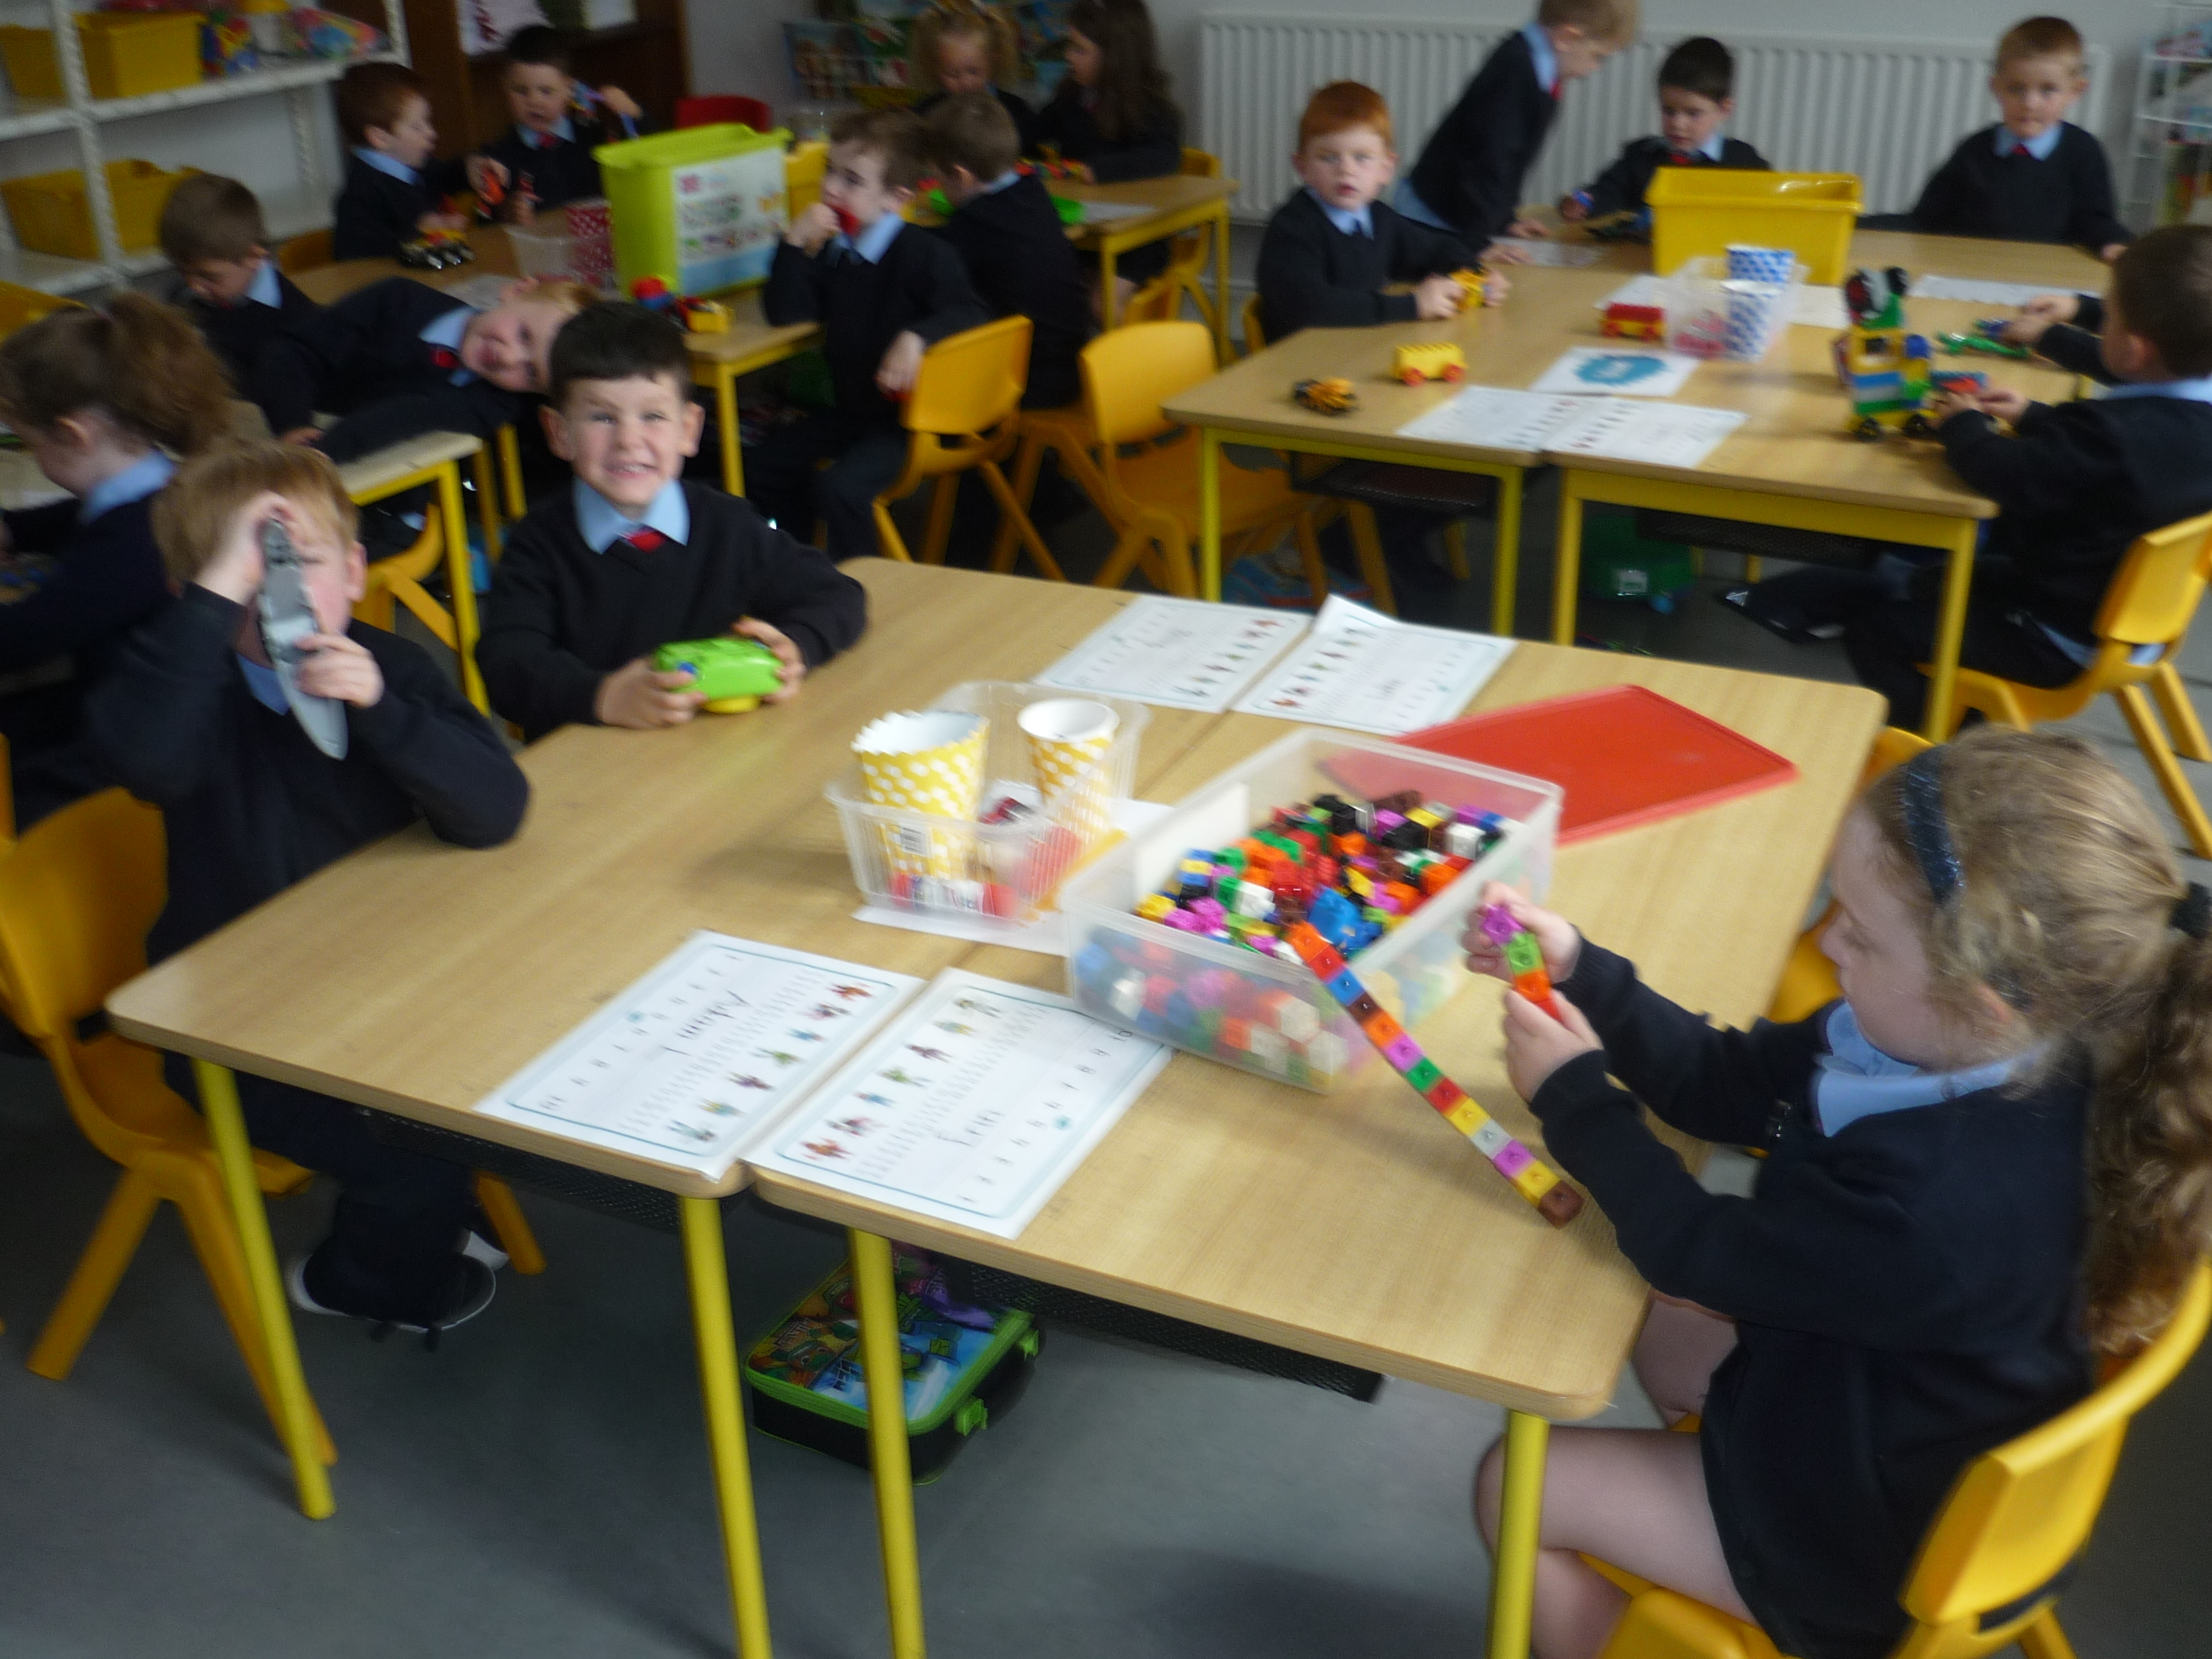 Junior_Infants_hard_at_work_3.jpg